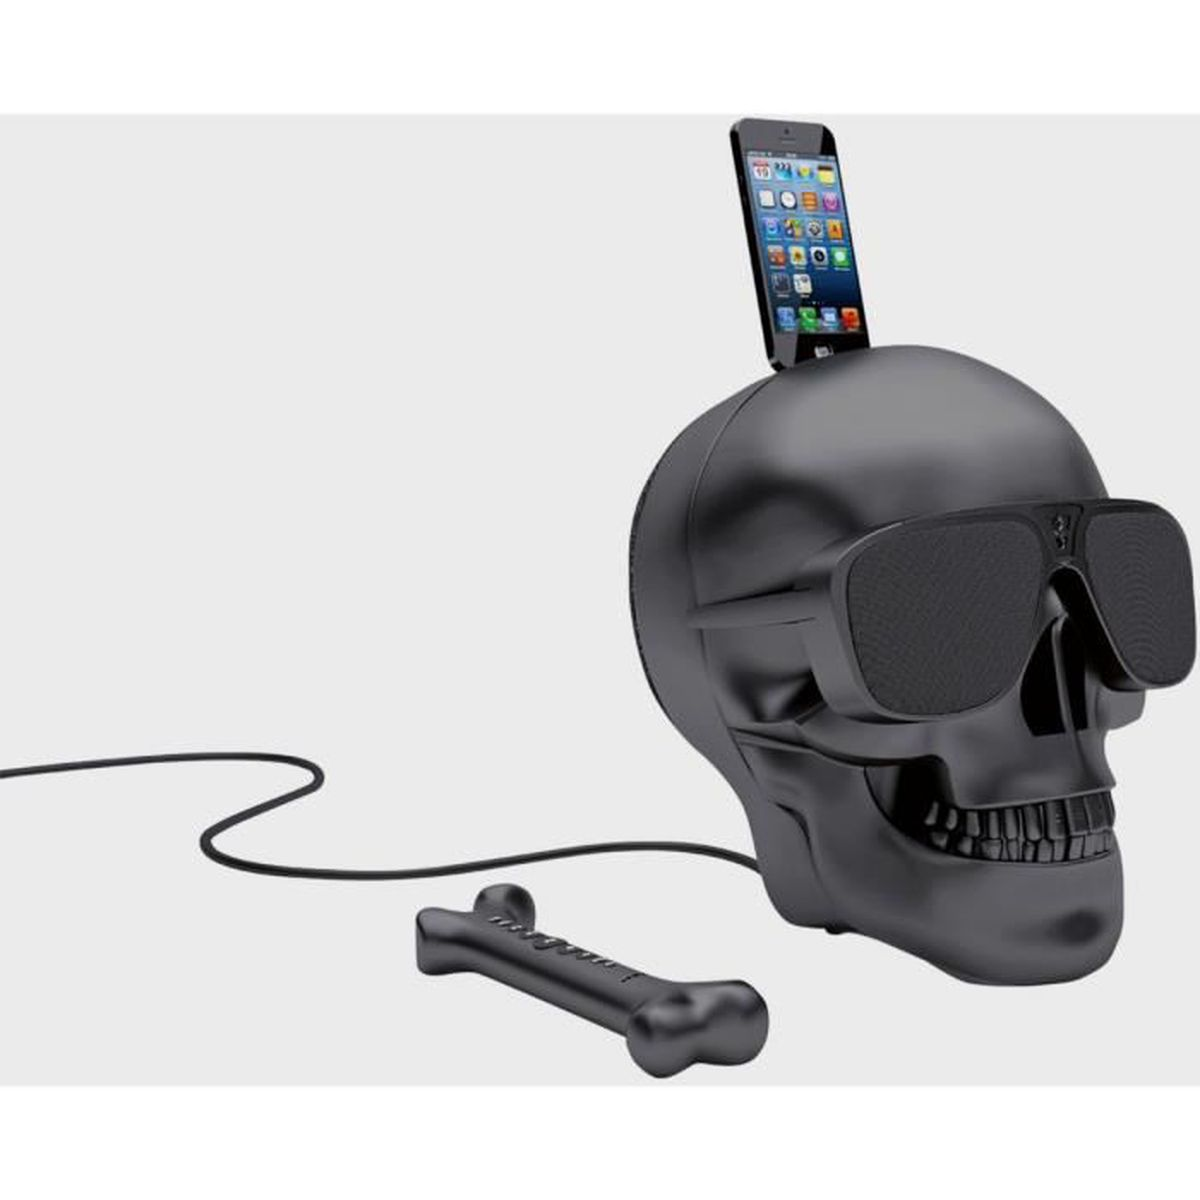 enceinte jarre aeroskull hd matt black enceintes bluetooth avis et prix pas cher soldes. Black Bedroom Furniture Sets. Home Design Ideas